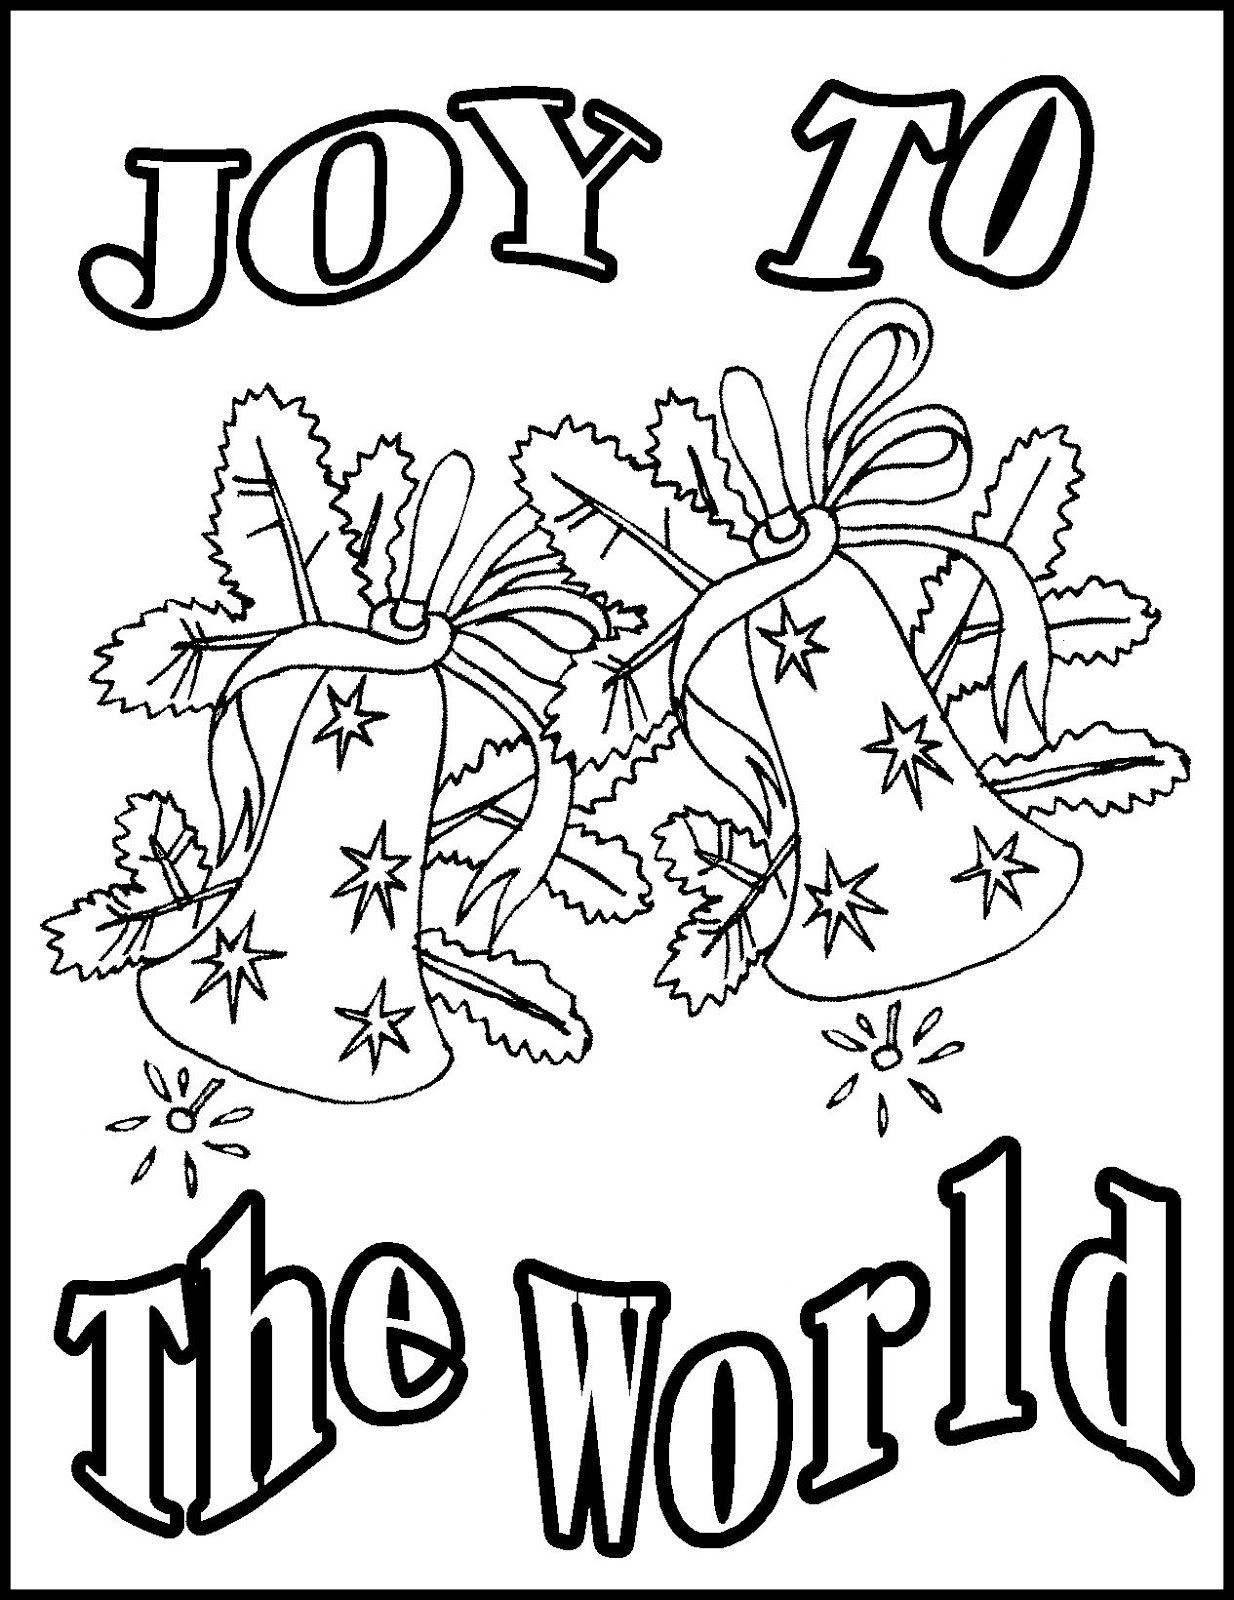 christian christmas coloring pages - photo#30